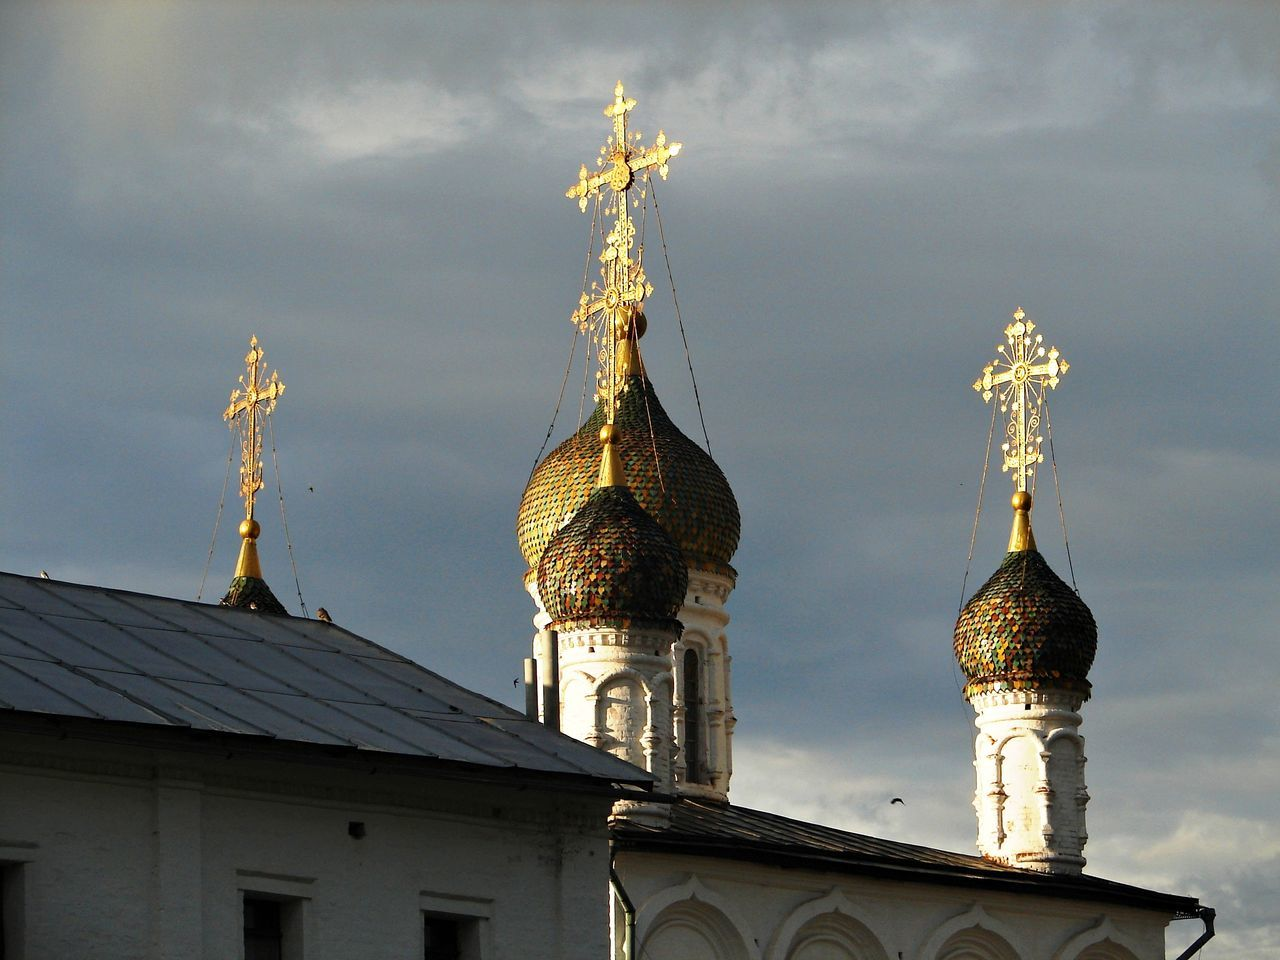 Churches of Gorokhovets, one of the oldest Russian cities Architecture Churches Cupola Day Golden Cross In The Middle Of Russia No People Old Town Outdoors Place Of Worship Sky Summer Travel Tourist Destination Travel Destination White Walls The Secret Spaces